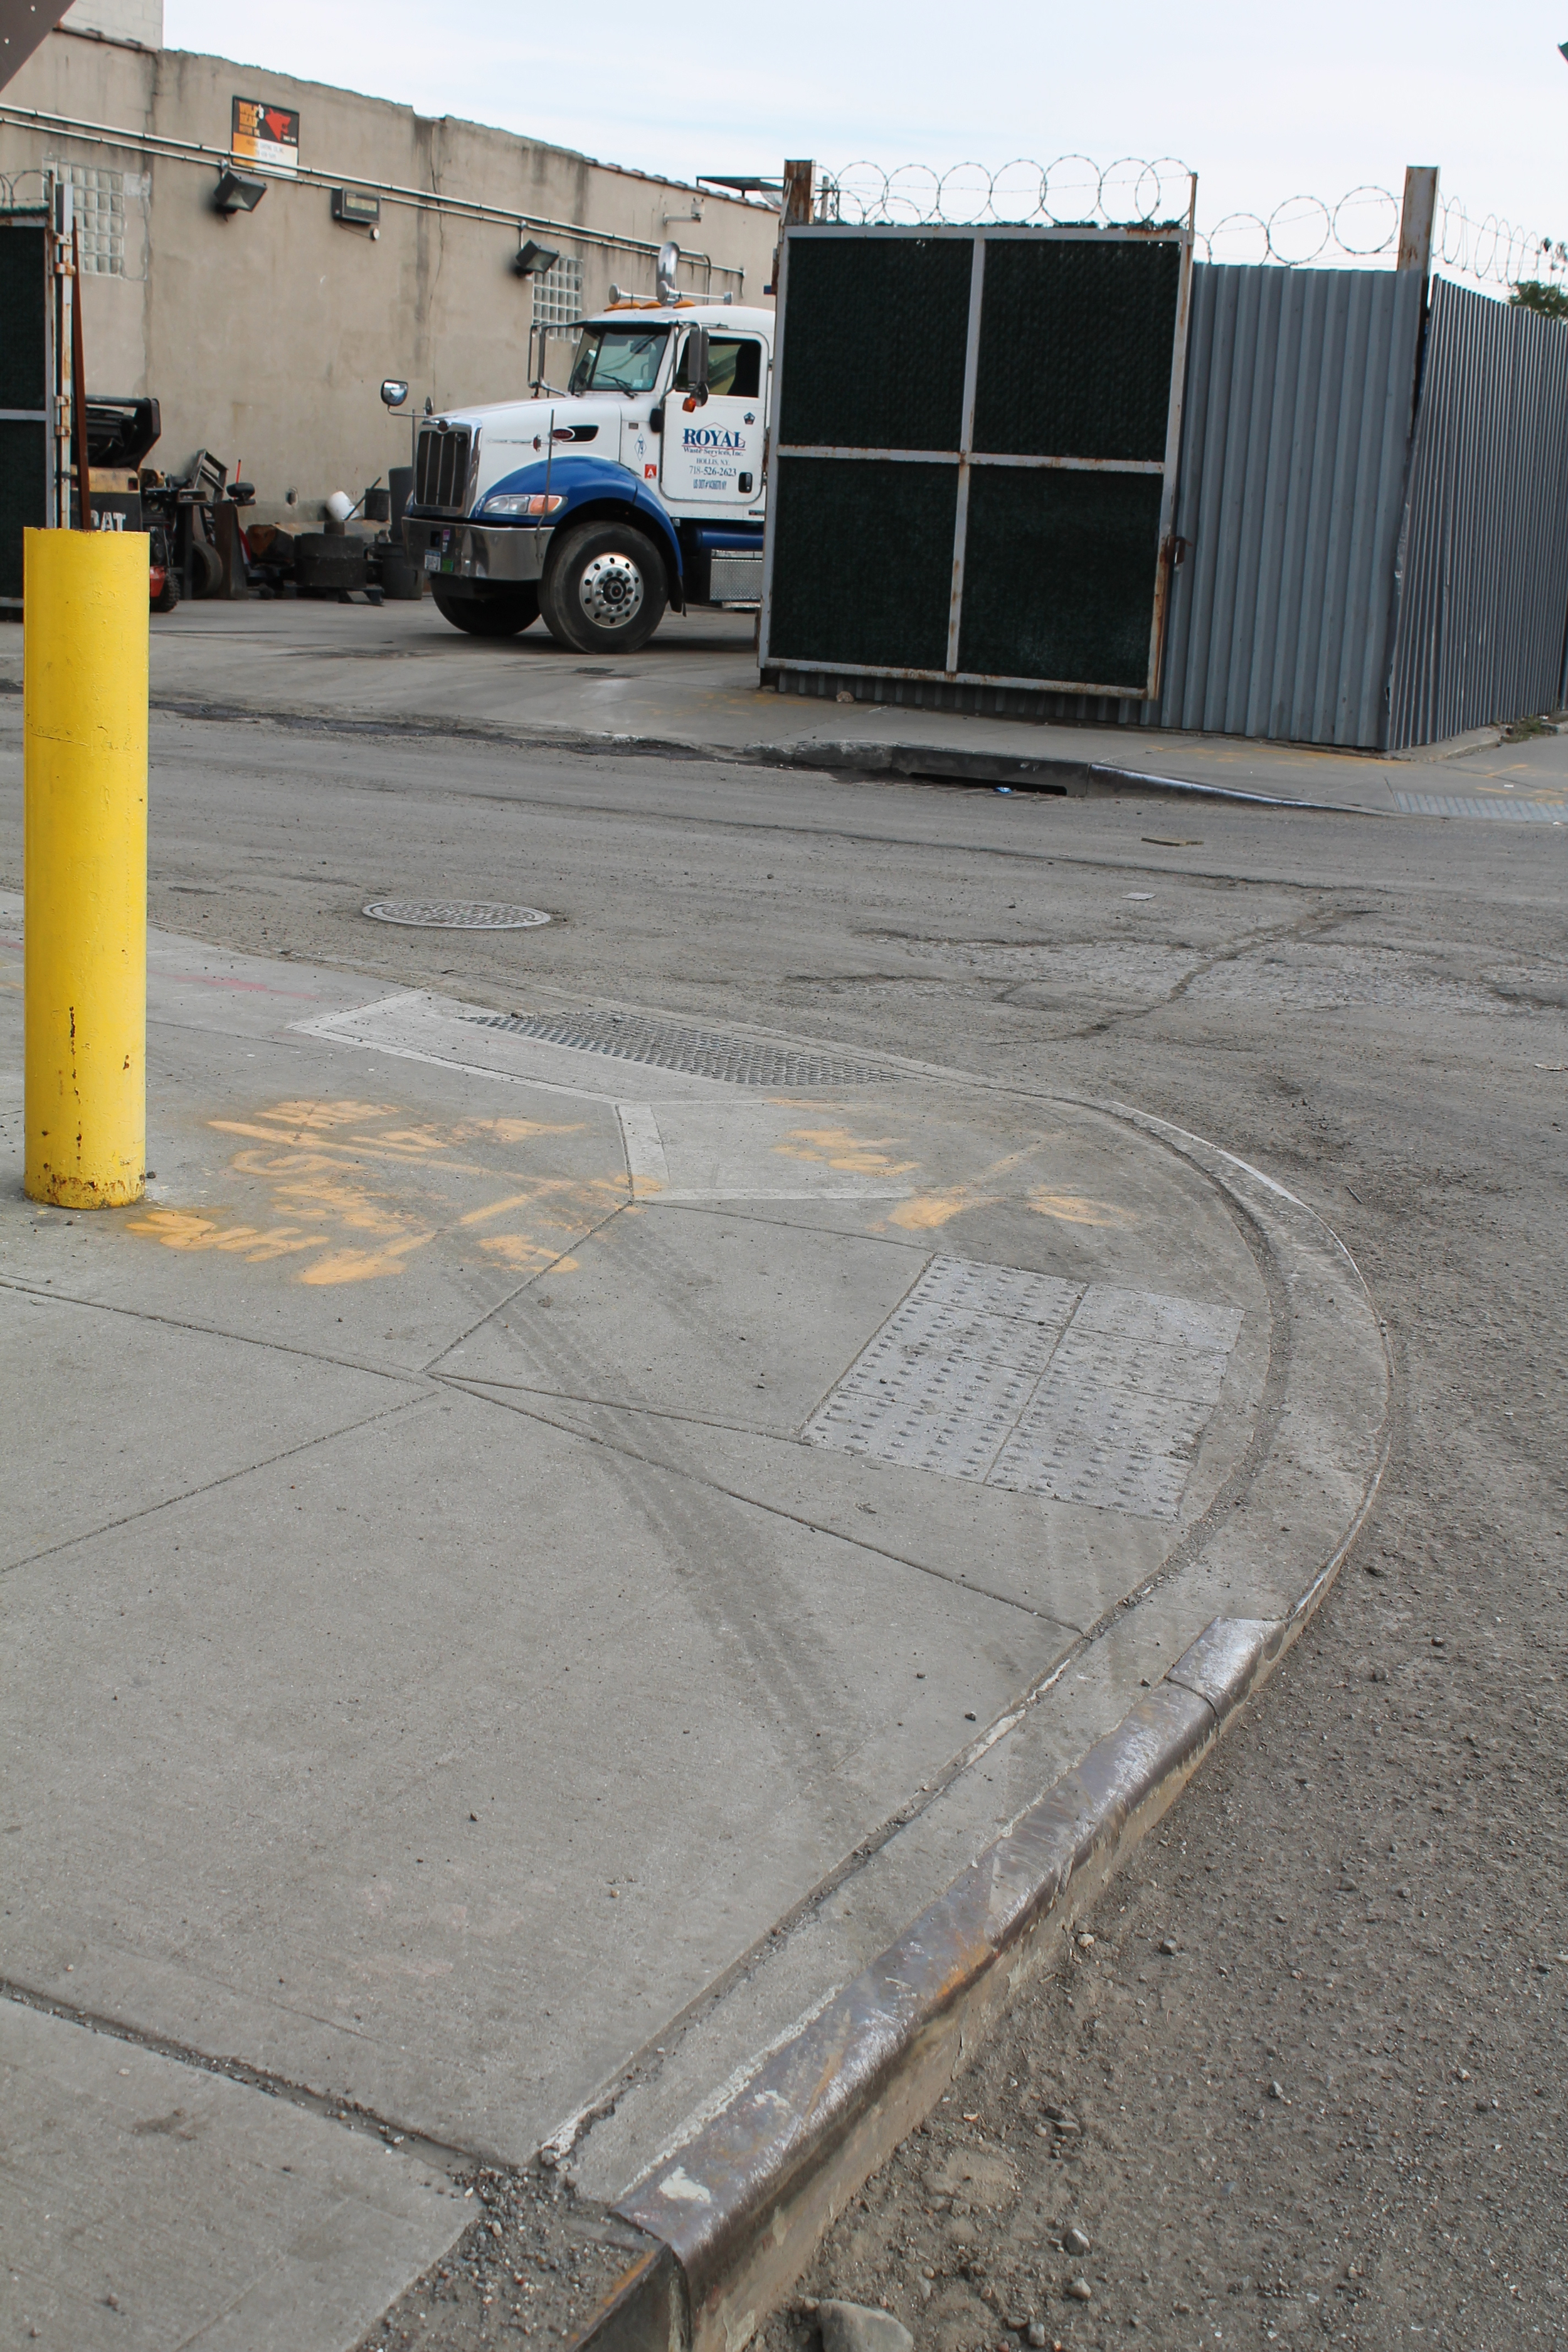 The drivers of some large and heavy commercial trucks are only to make wide right turns onto narrow residential streets in Jamaica, Queens, by jumping the wheels of their trucks onto sidewalks, leaving marks, such as those seen here on October 28, 2014, raising questions about the safety of pedestrians and other vehicular traffic in the residential neighborhoods of Jamaica. Source : Louis Flores